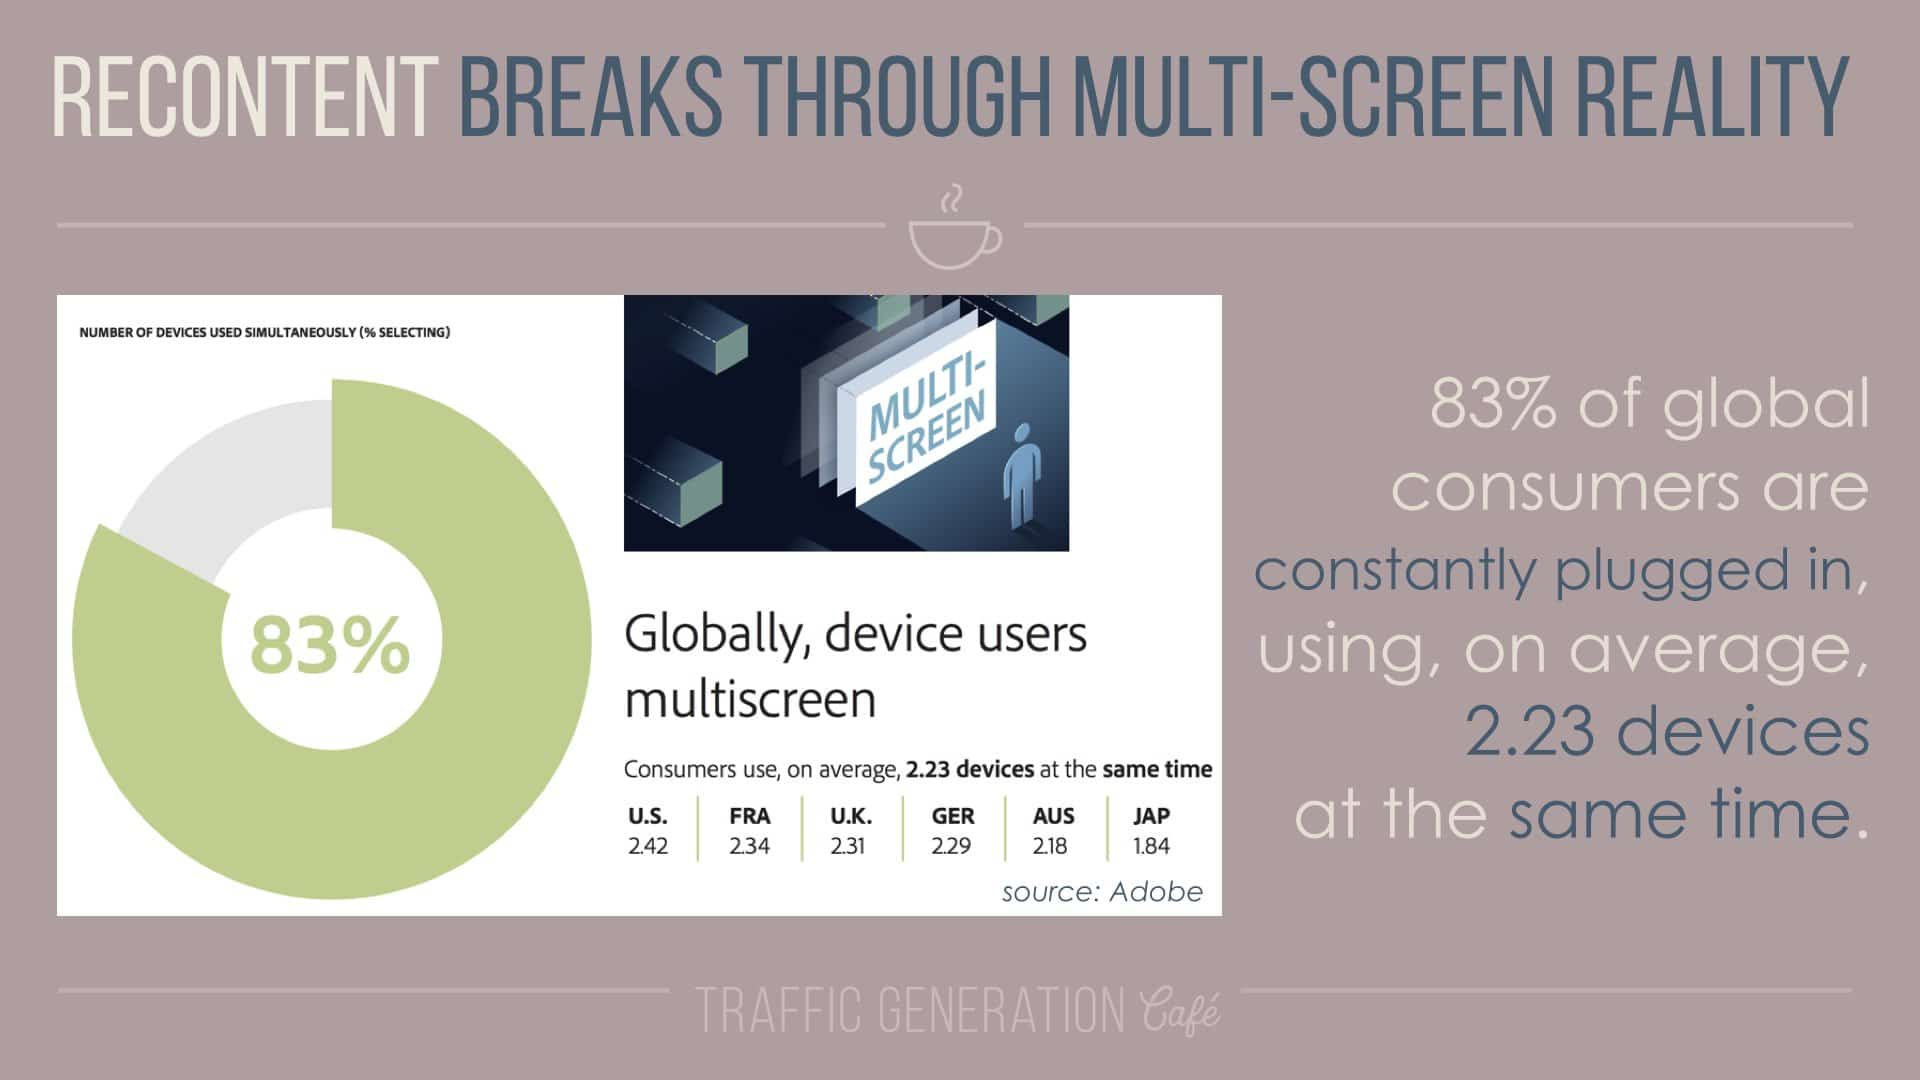 content repurposing helps with multiscreen reality